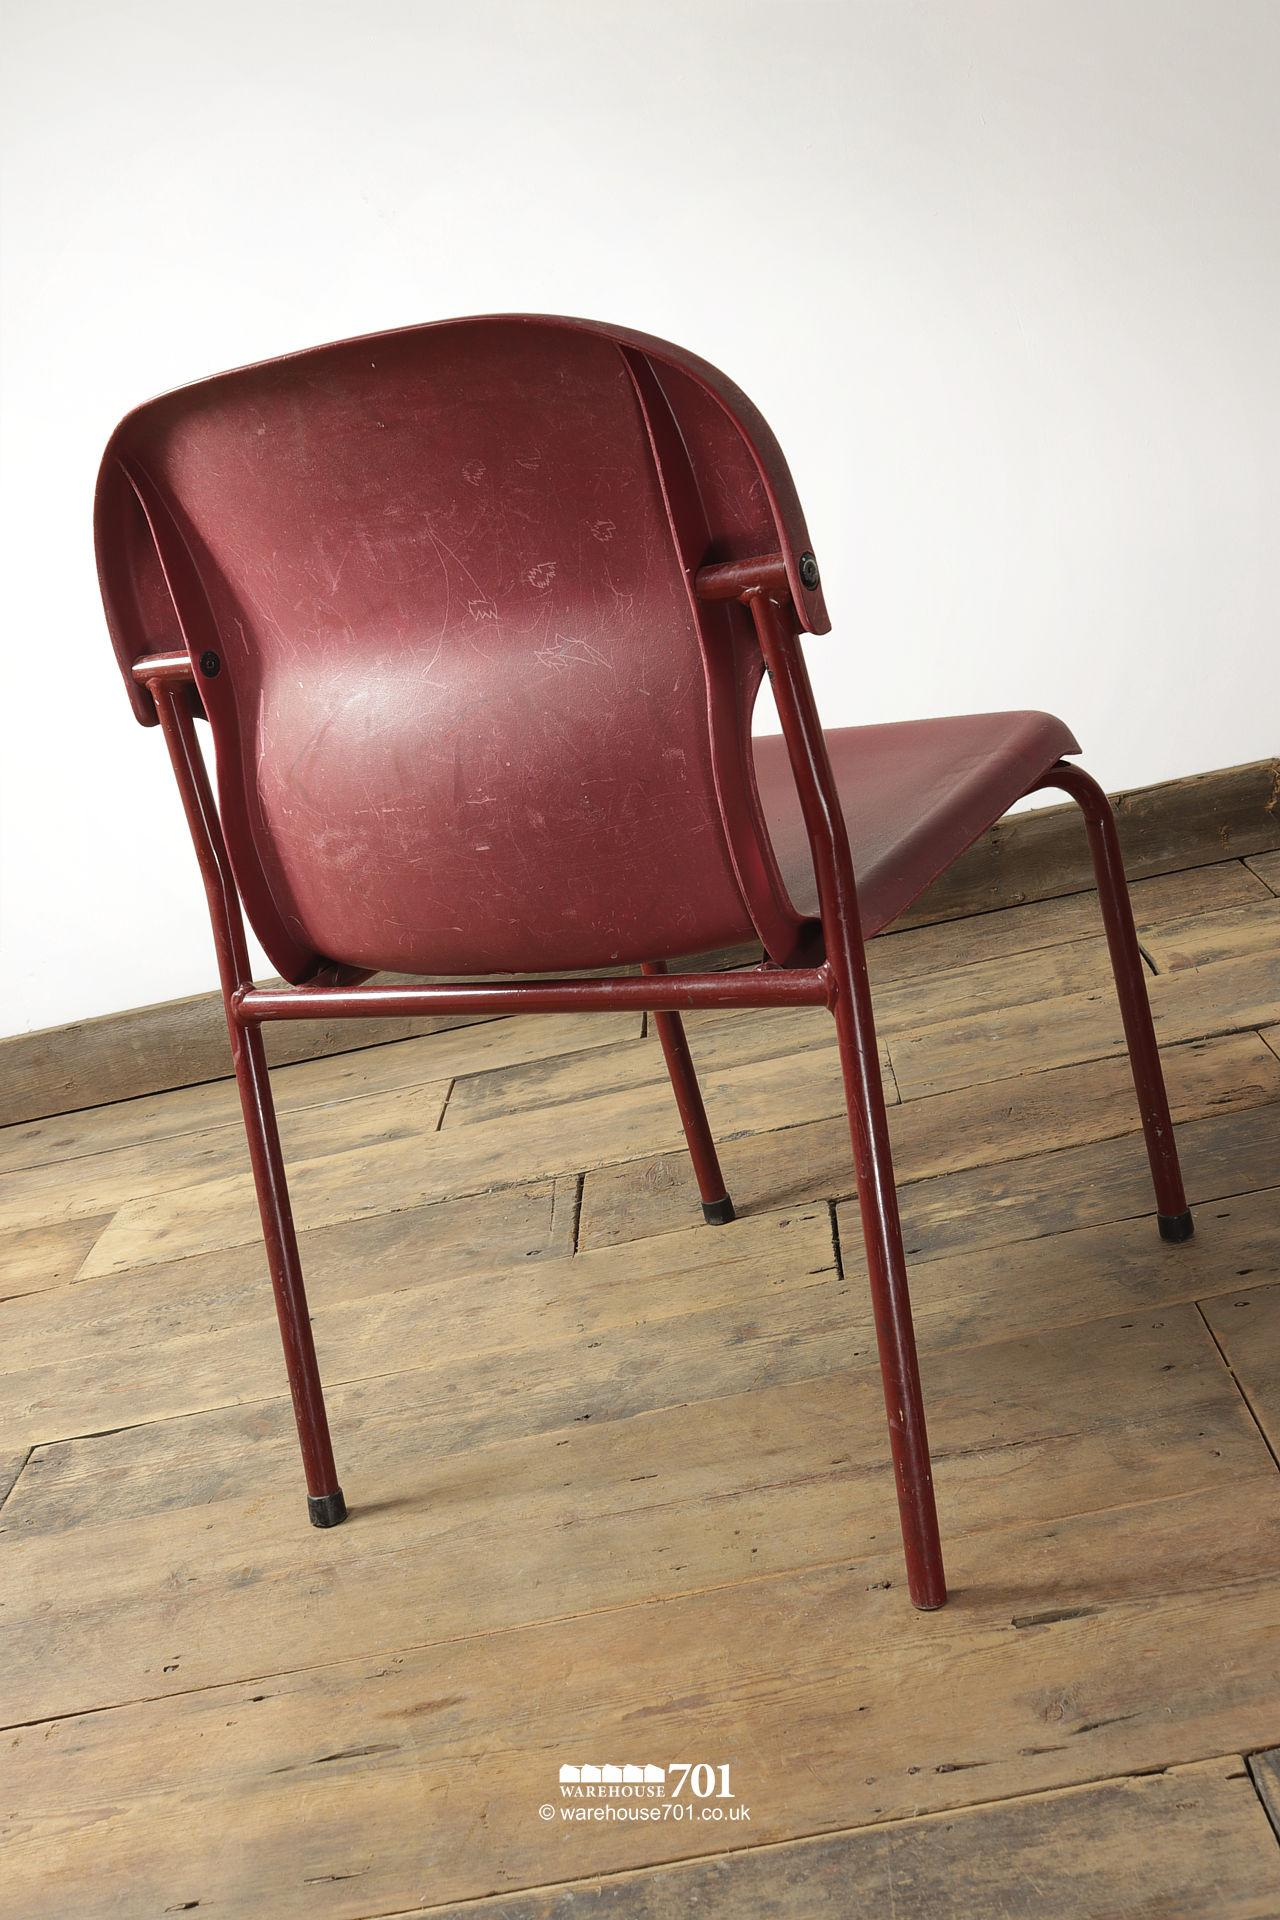 Vintage Burgundy Tubular Steel and Plastic Stacking Chairs #5